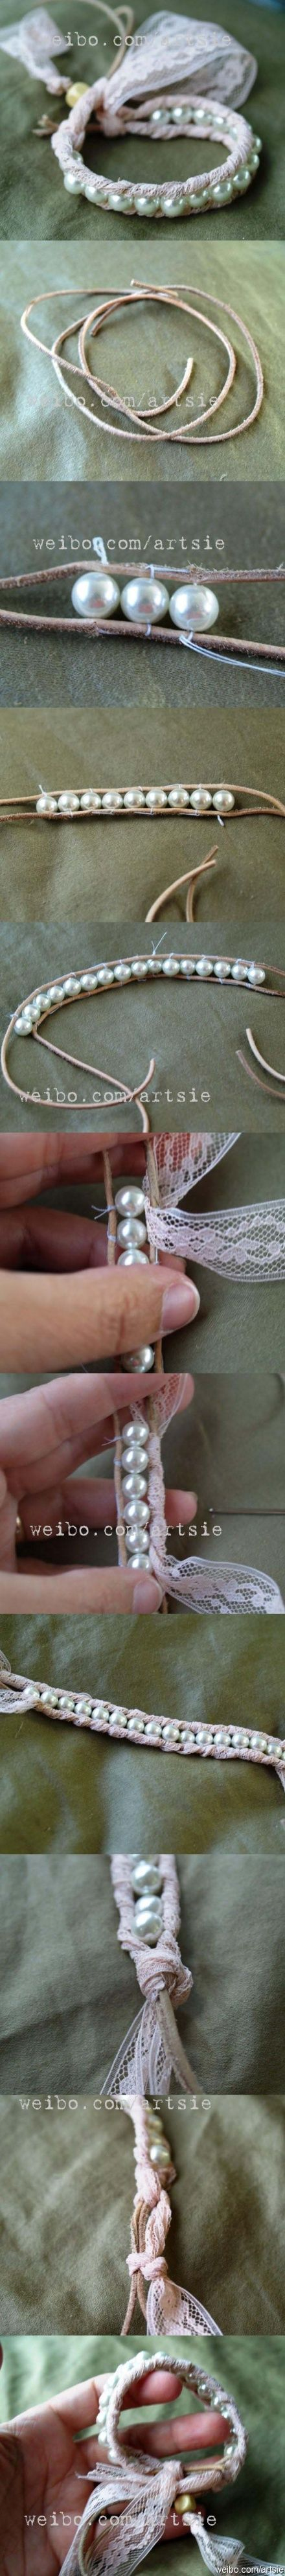 super cute!: Bracelets Tutorials, Idea, Wraps Bracelets, Beads Bracelets, Pearl Bracelets, Bridesmaid Gifts, Diy Bracelets, Lace Bracelets, Pearls Bracelets